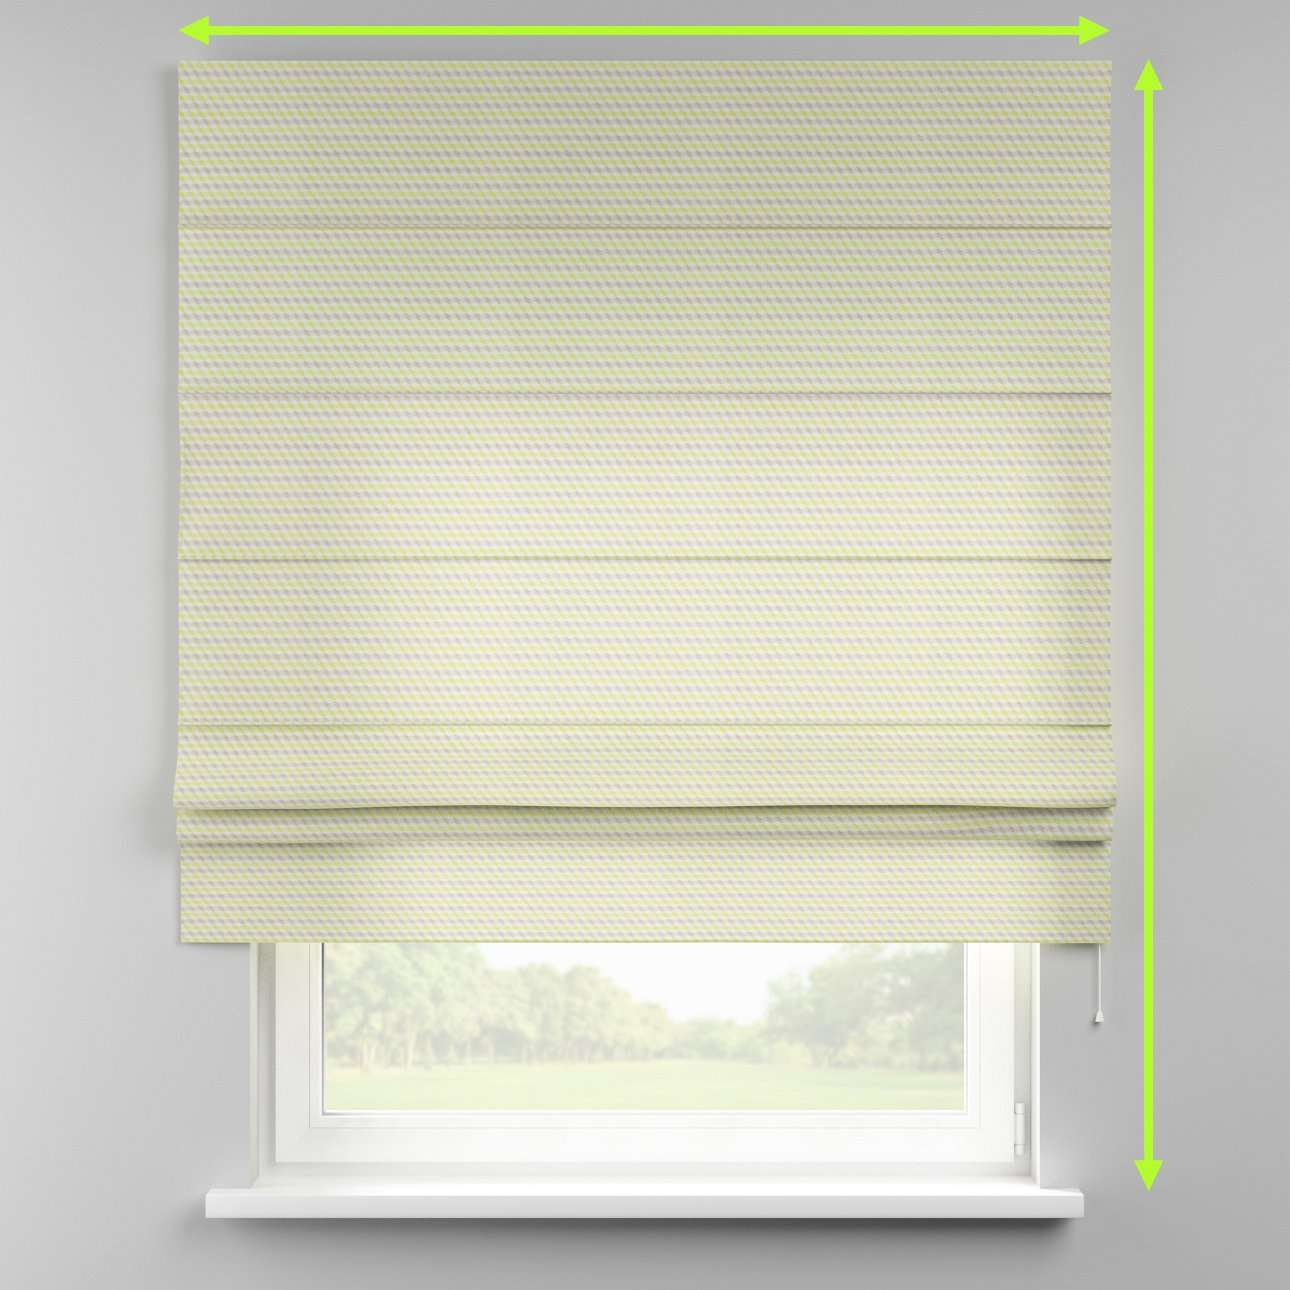 Padva roman blind in collection SALE, fabric: 140-36